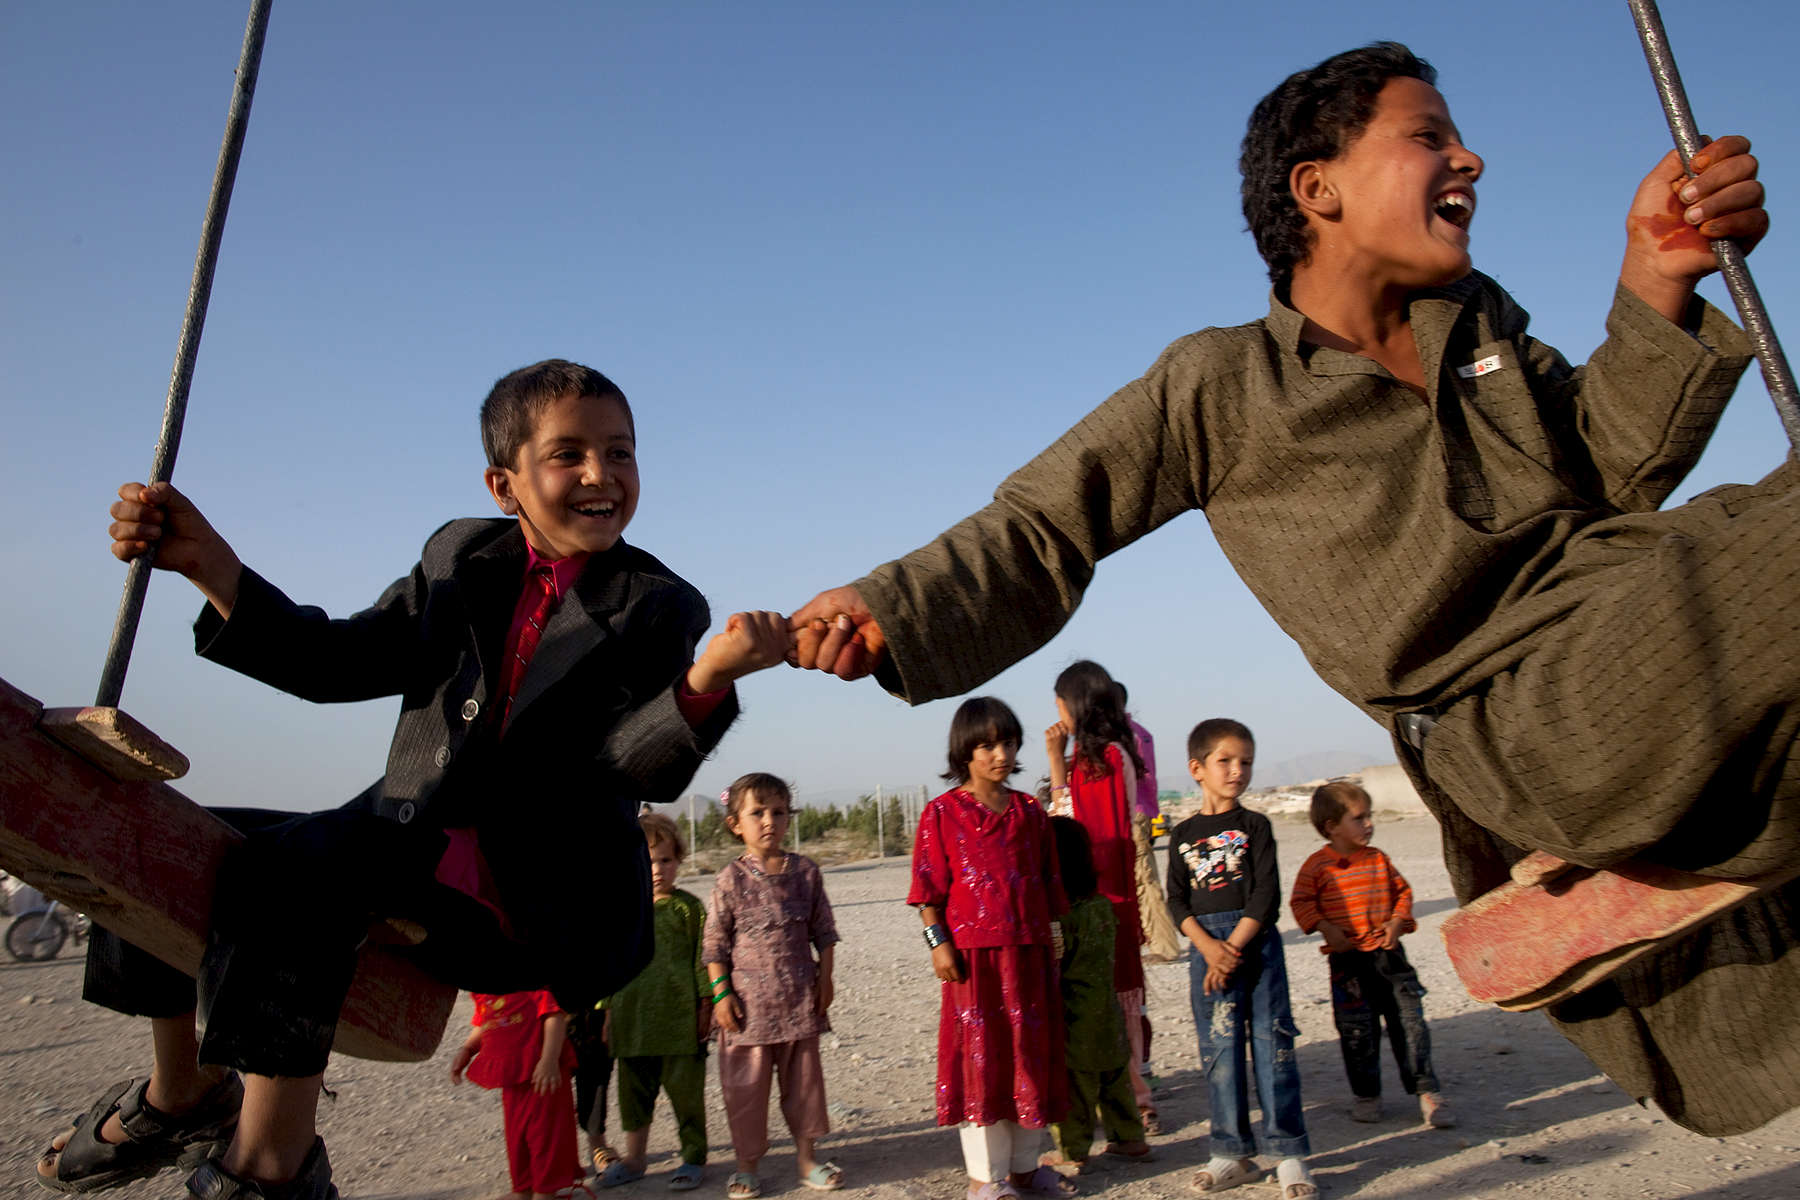 KABUL, AFGHANISTAN - SEPTEMBER 20: Afghan boys hold hands as they swing on a merry-go-round celebrating the first day of Eid-al-Fitr, a three day holiday marking the end of the fasting month of Ramadan September 20, 2009 in Kabul, Afghanistan. During the holiday Afghans visit friends and family exchanging gifts and feasting. (Photo by Paula Bronstein/Getty Images)